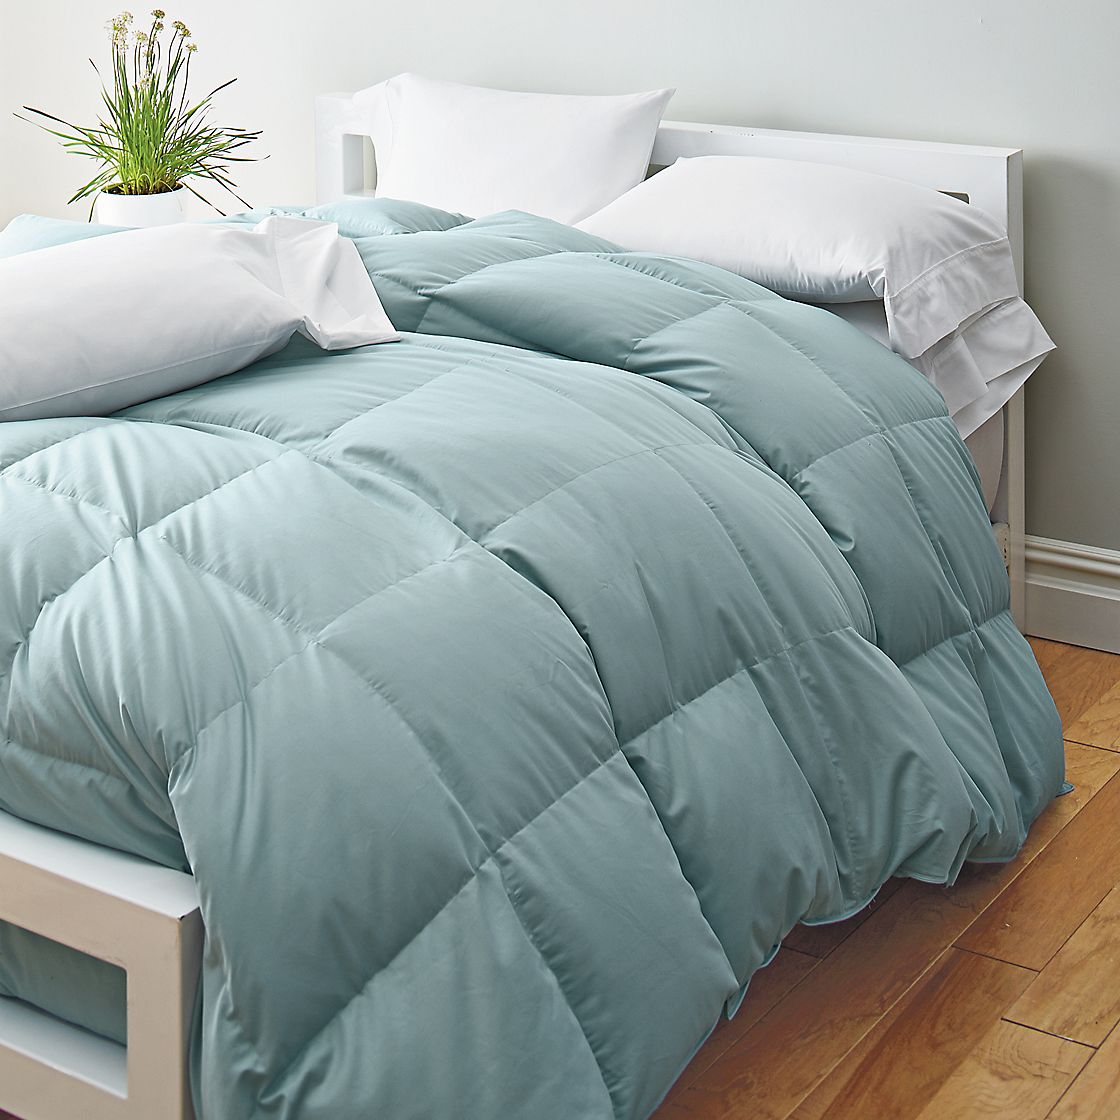 White Bay 174 Supersize Down Comforter The Company Store